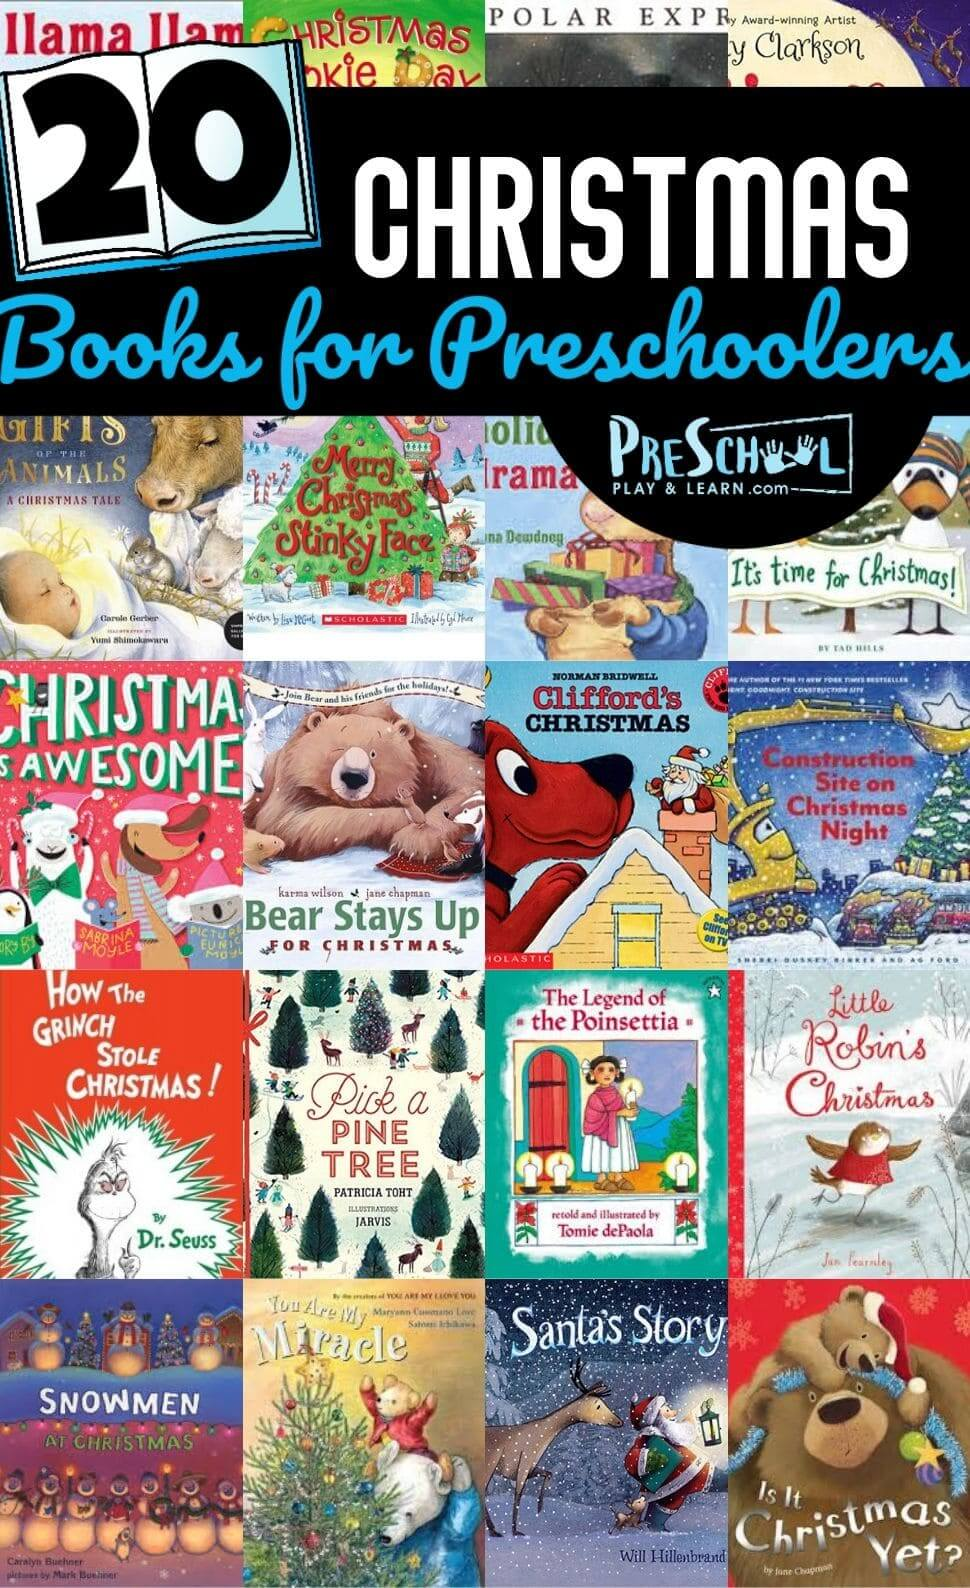 Cuddle up with a fun book this December with your toddler, preschool, pre-k, kindergarten, and first grade child with these engagingChristmas Books for Preschoolers. We have so many really cute stories with beautiful illustrations to keep your child engaged with thesepreschool Christmas bookthe whole holiday season.